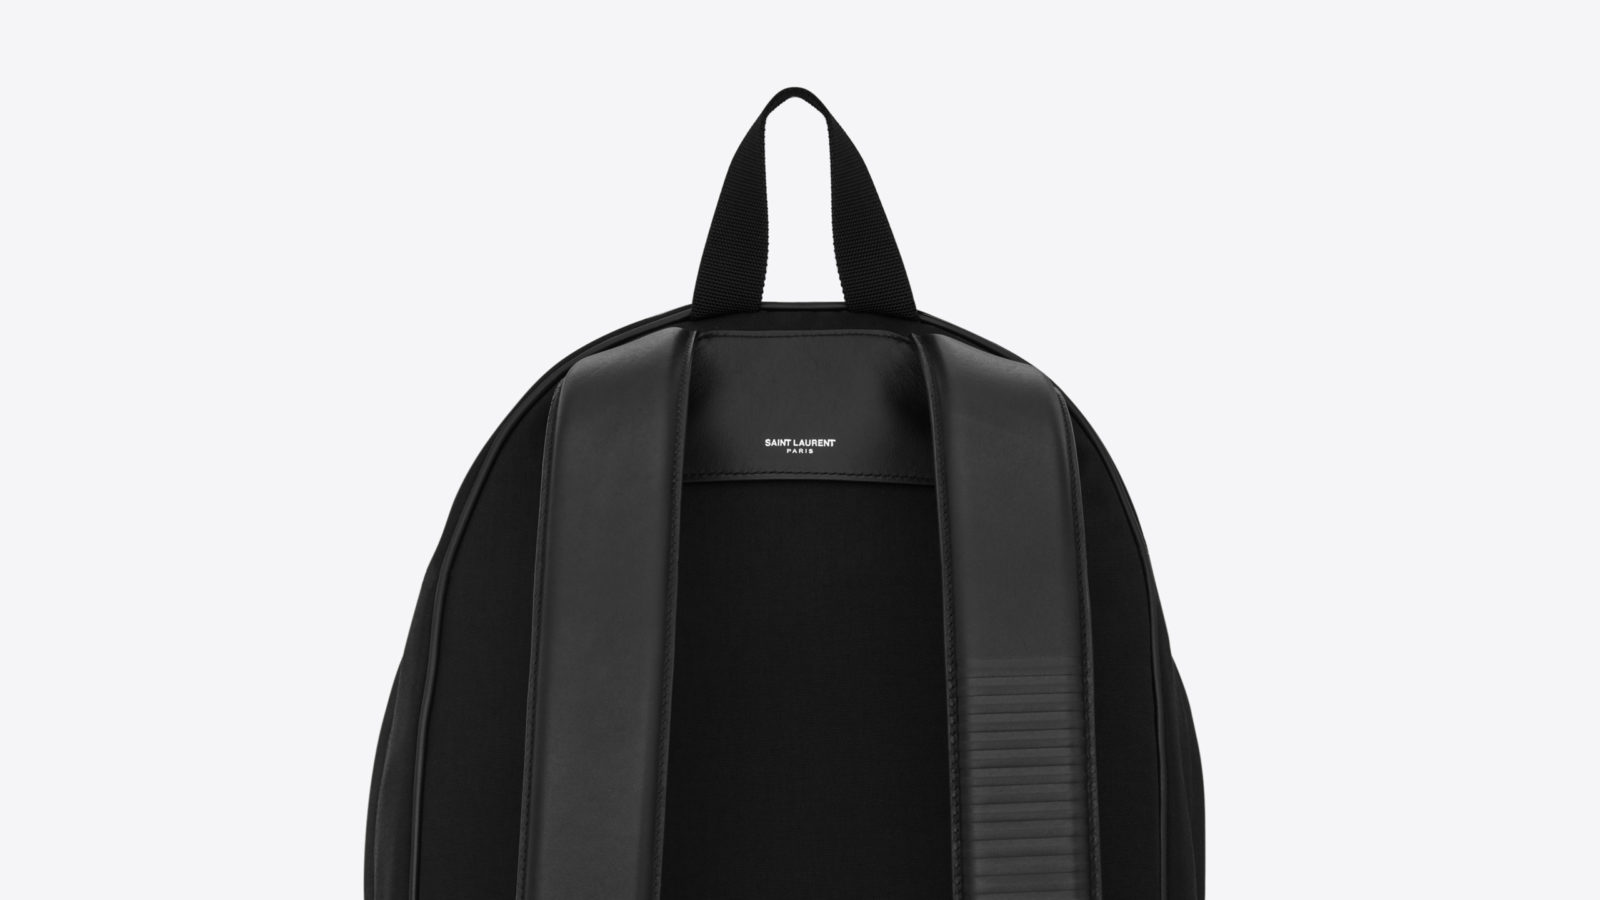 The Saint Laurent x Google smart backpack has arrived in Singapore